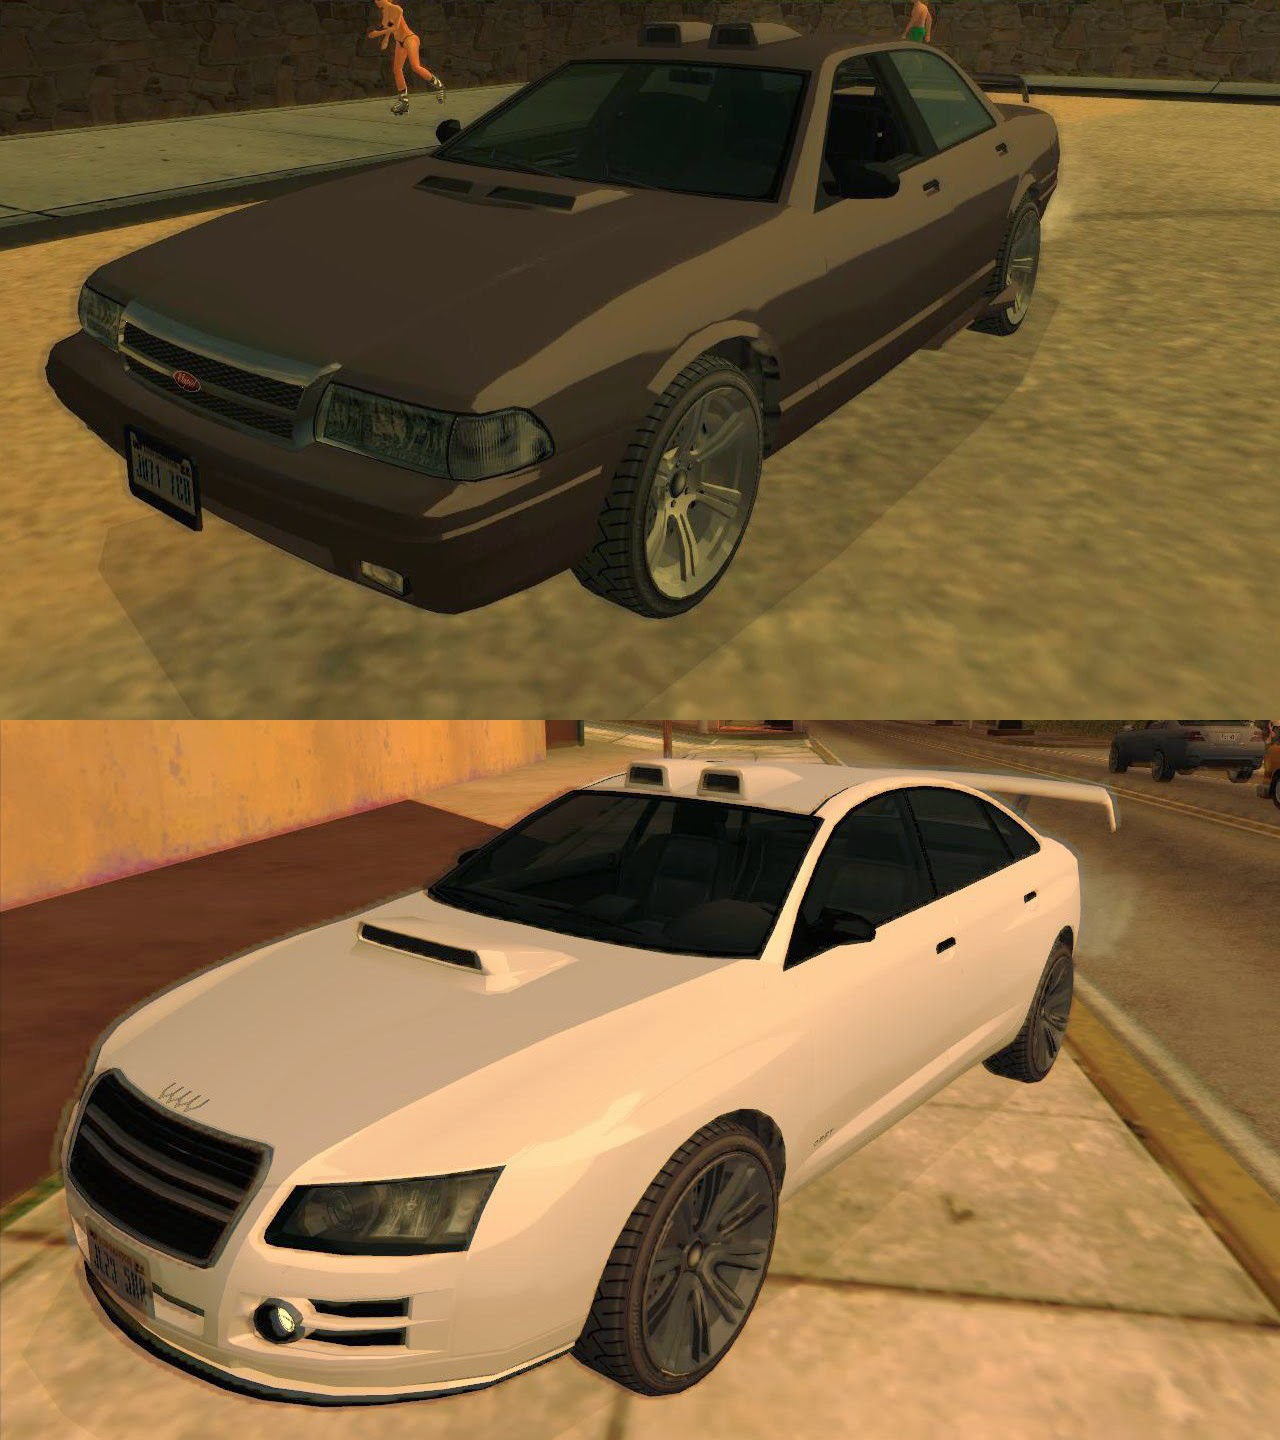 M4k3 Mods: [REL] GTA V Tuning Parts + Updated Cars